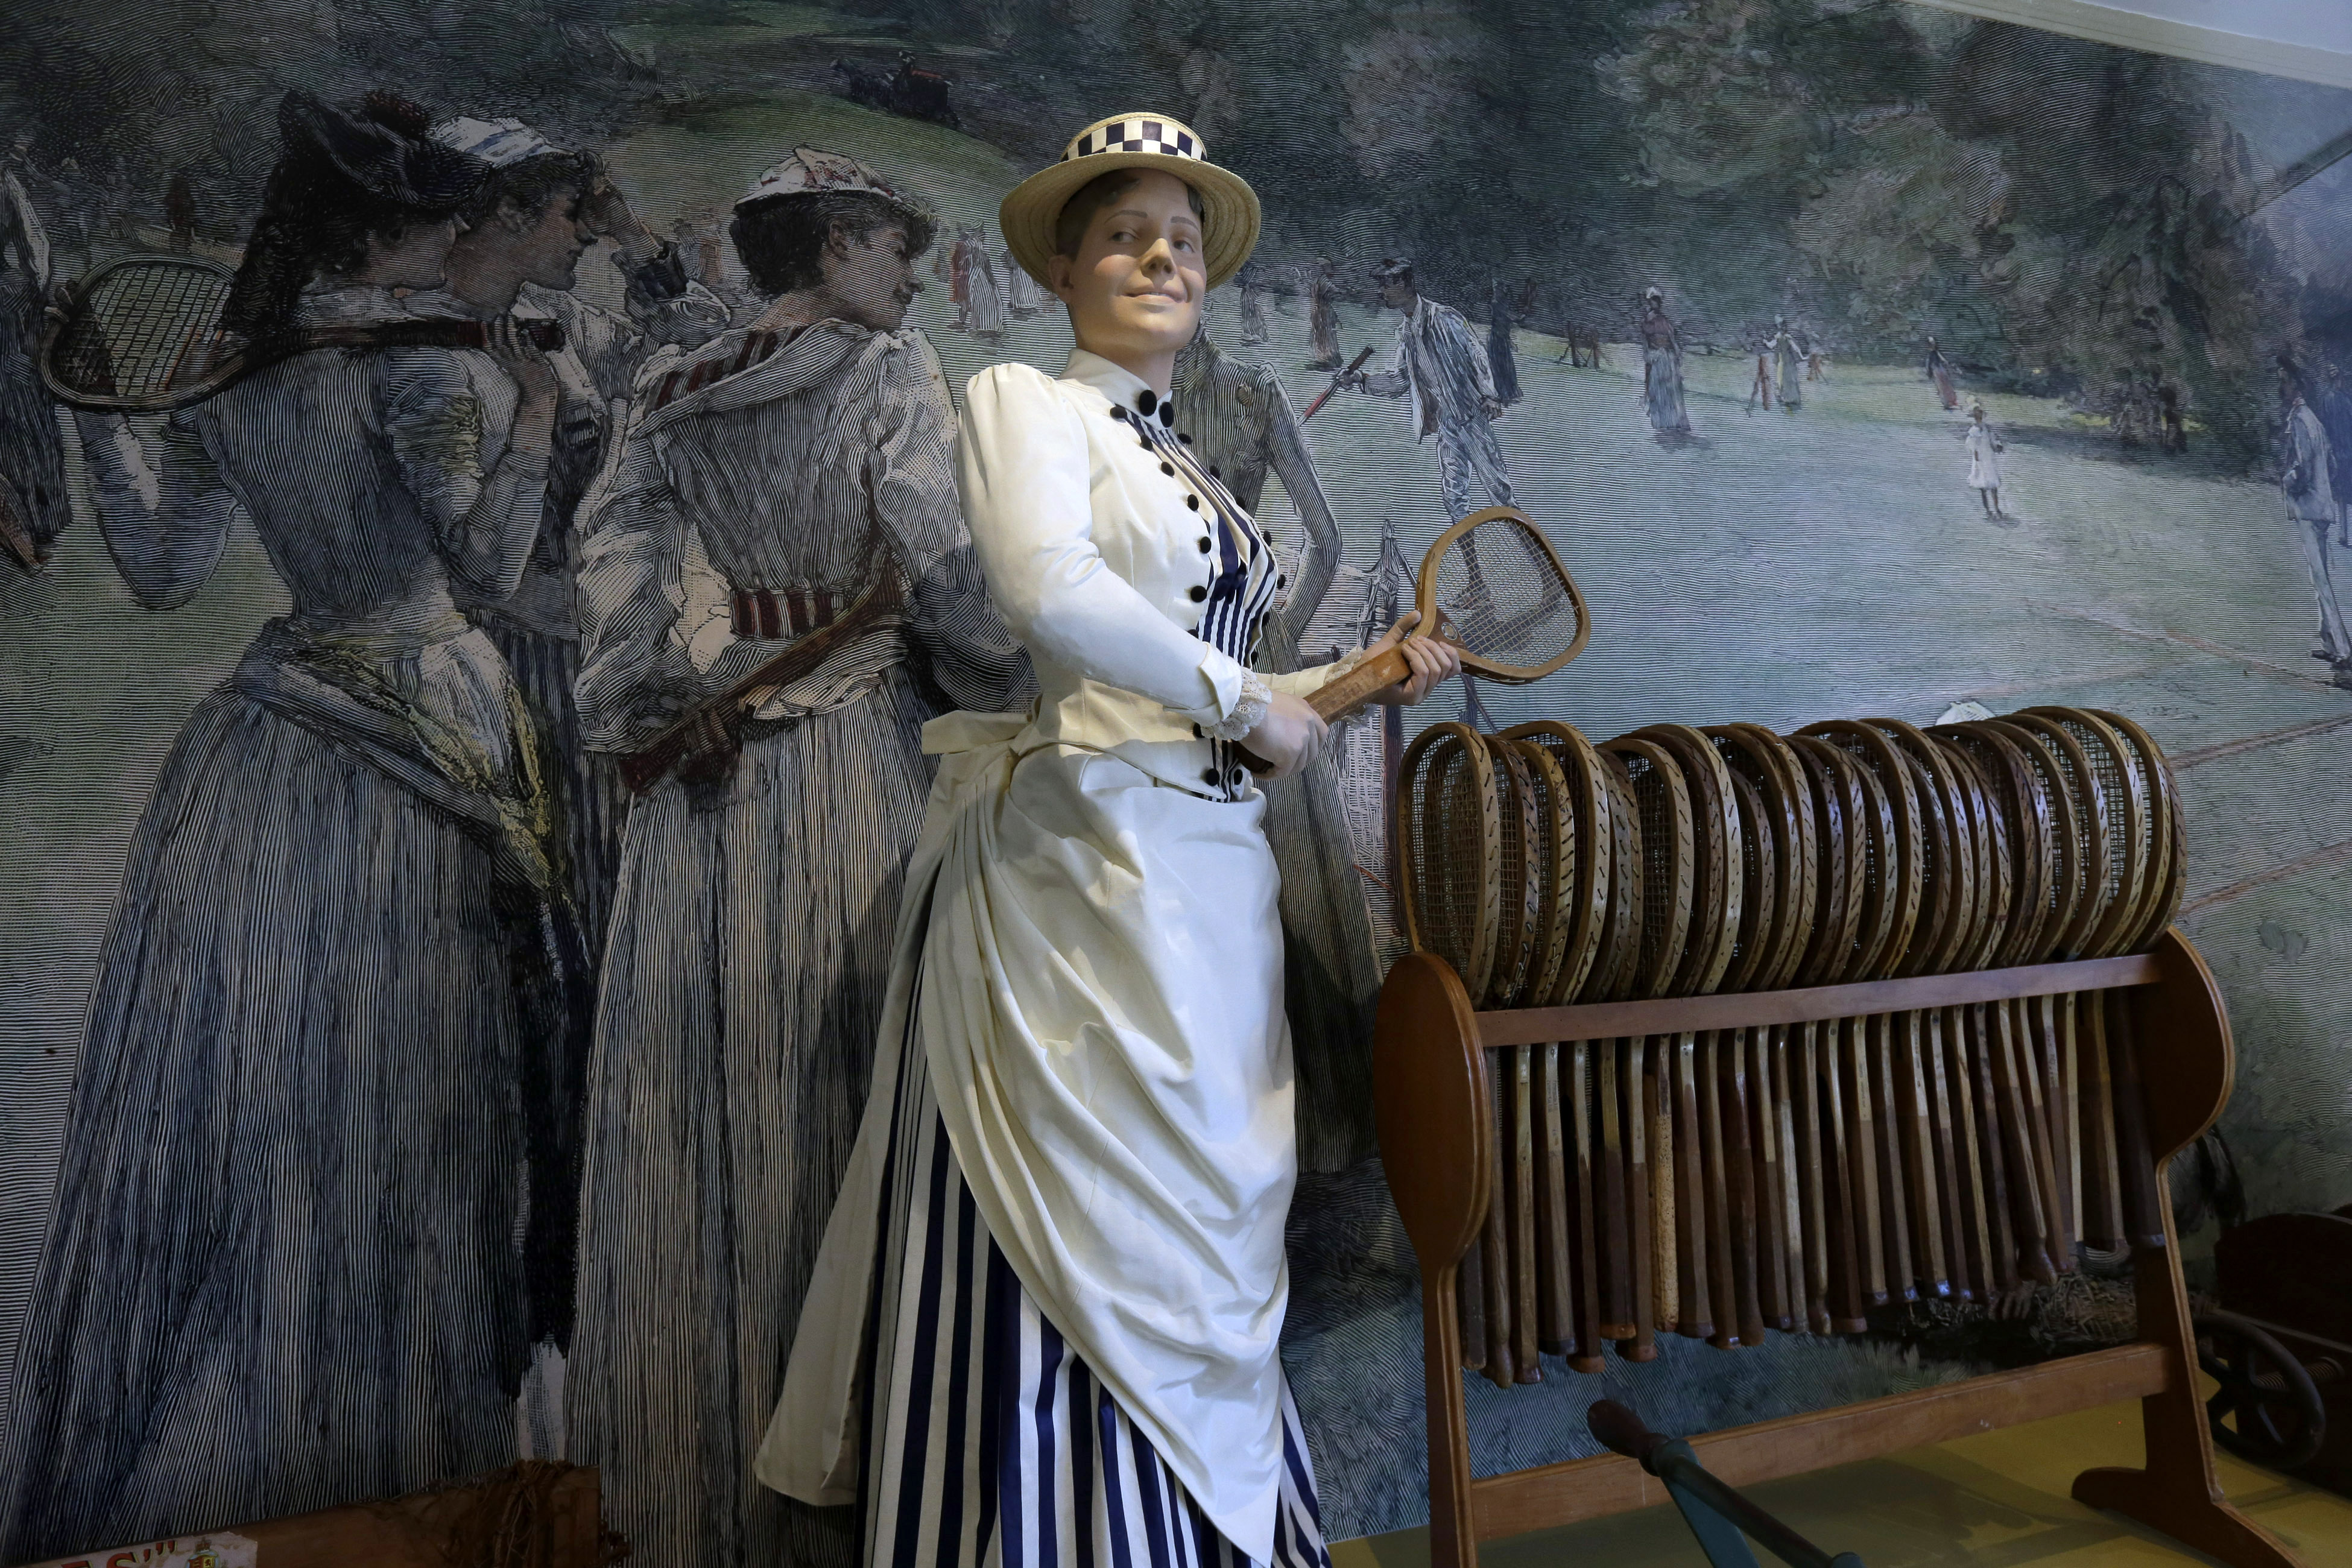 In this Monday, May 11, 2015 photo, a mannequin, dressed in early twentieth fashion is placed next to a tennis racquet stand of the same period, in a display case at the International Tennis Hall of Fame, in Newport, R.I.  The International Tennis Hall of